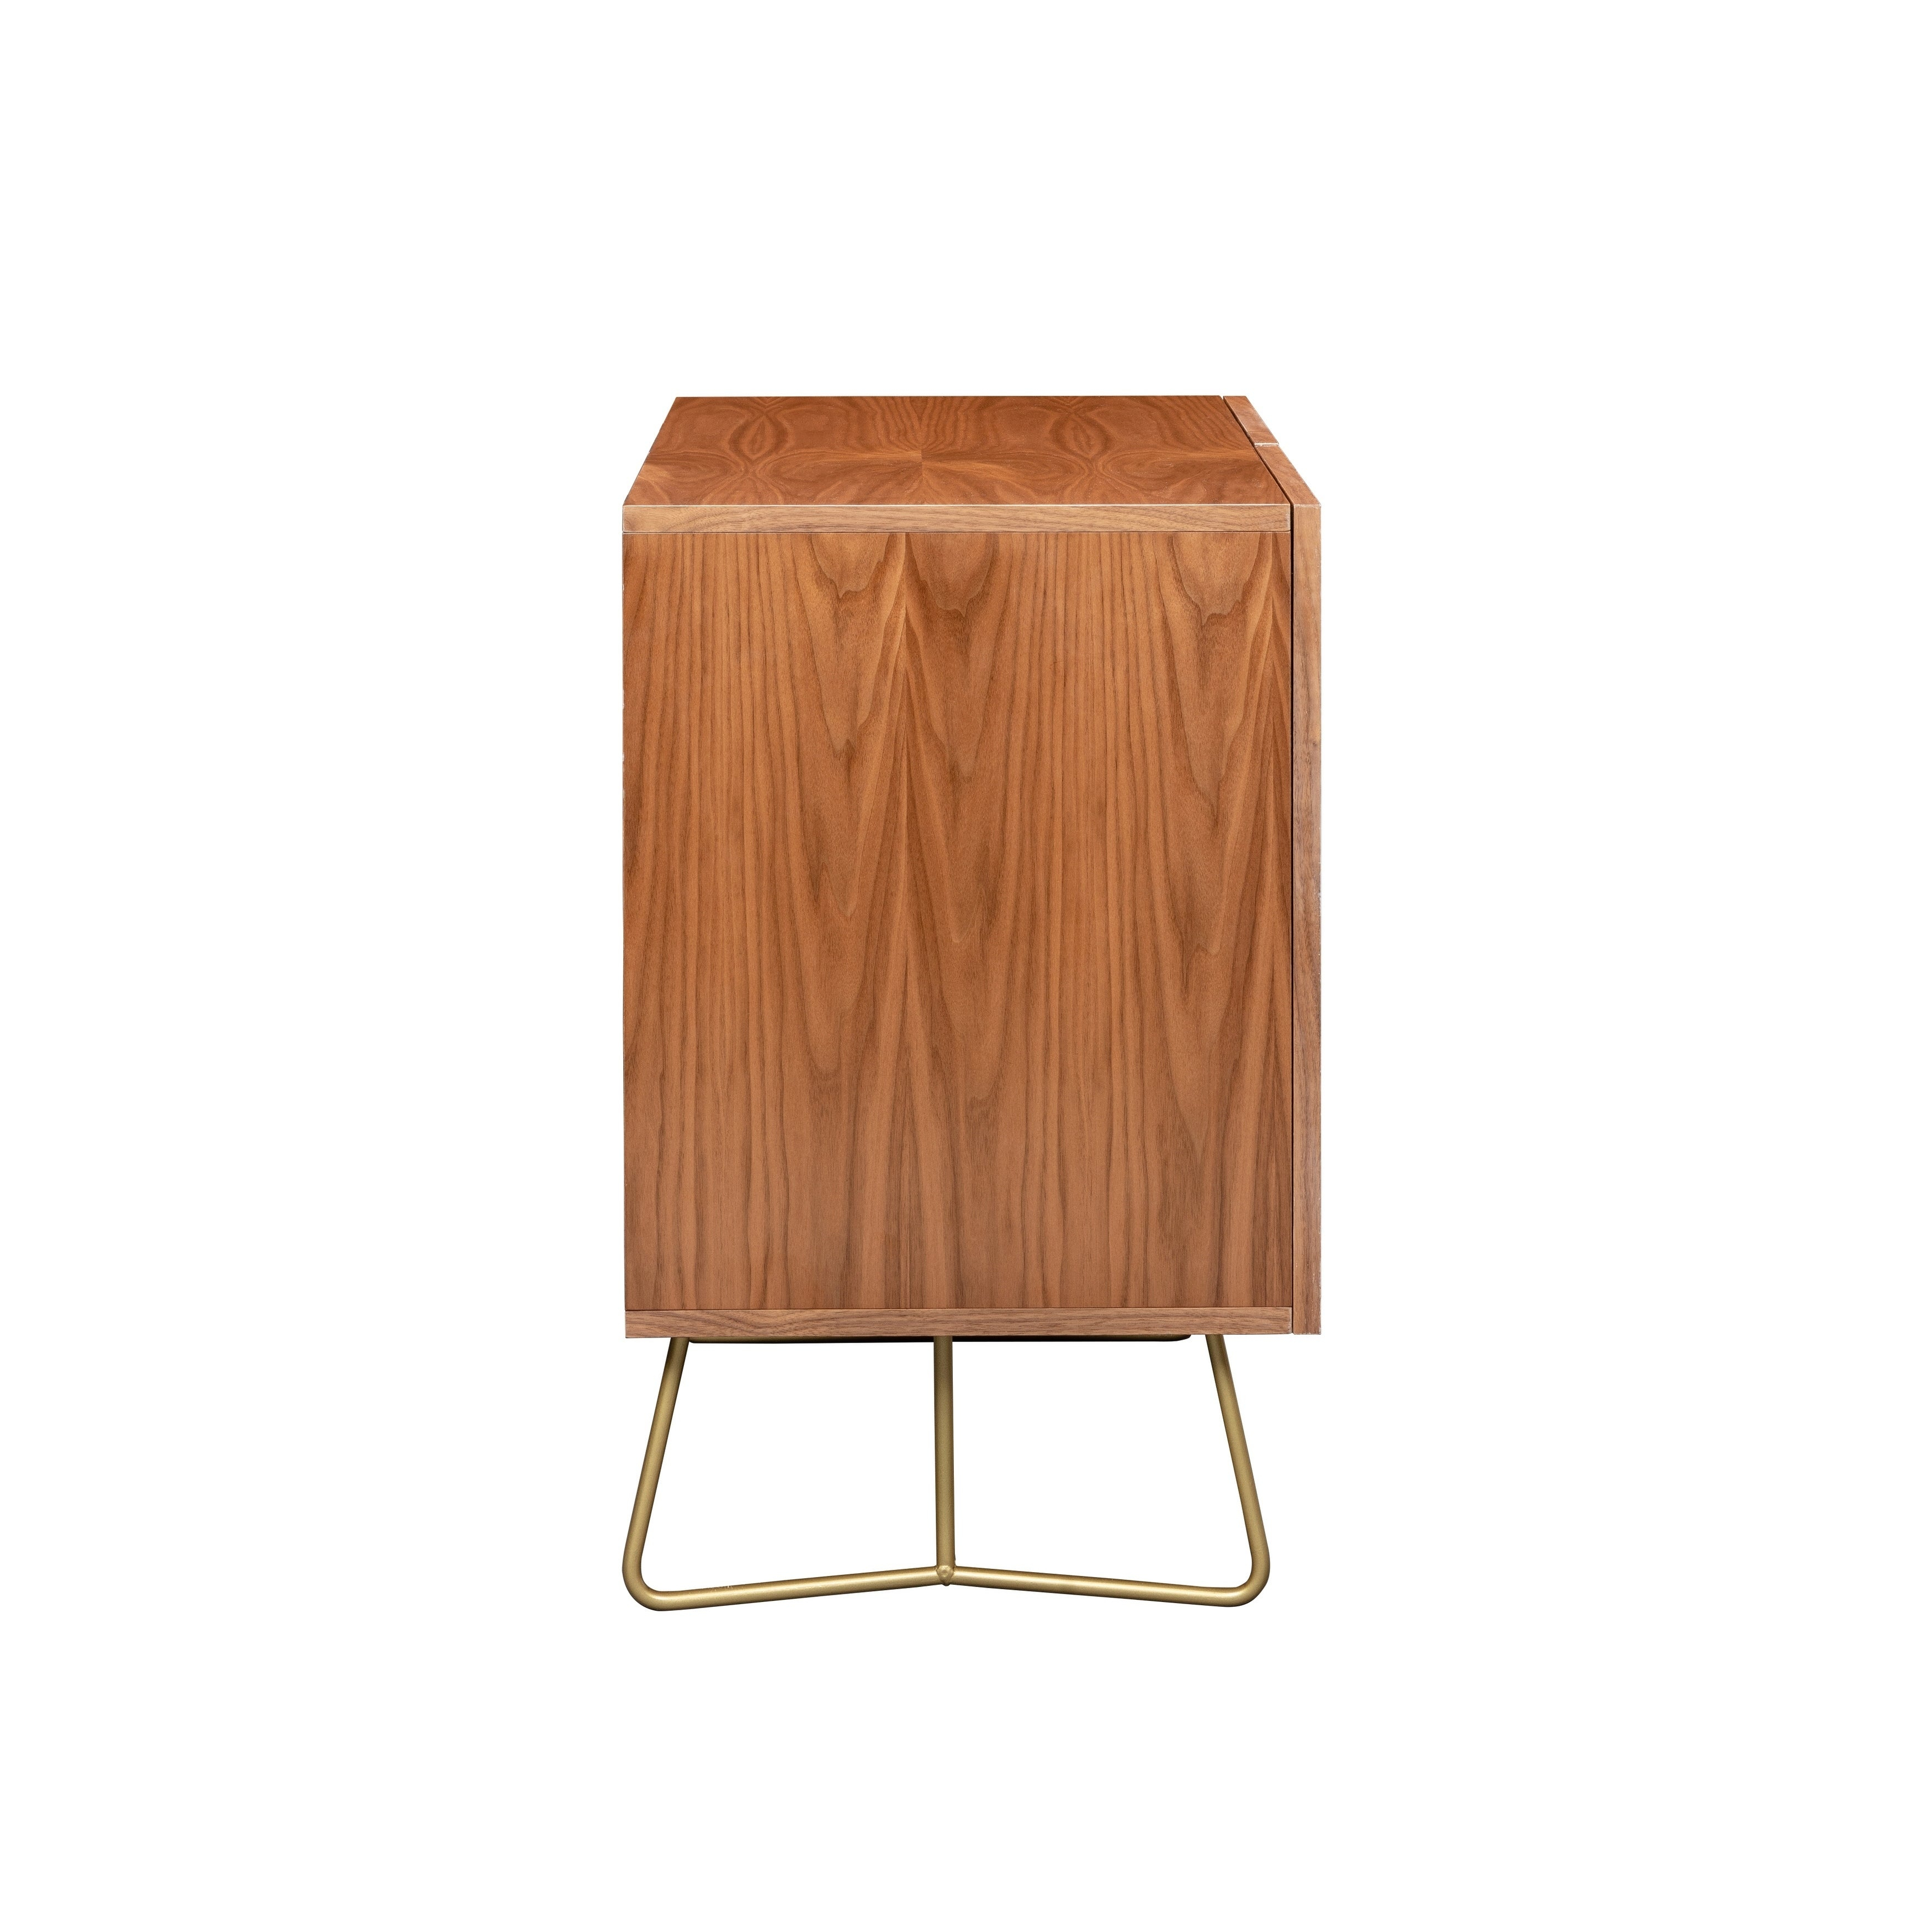 Deny Designs Colorful Leaves Credenza (Birch Or Walnut, 2 Leg Options) Pertaining To Colorful Leaves Credenzas (Photo 8 of 30)